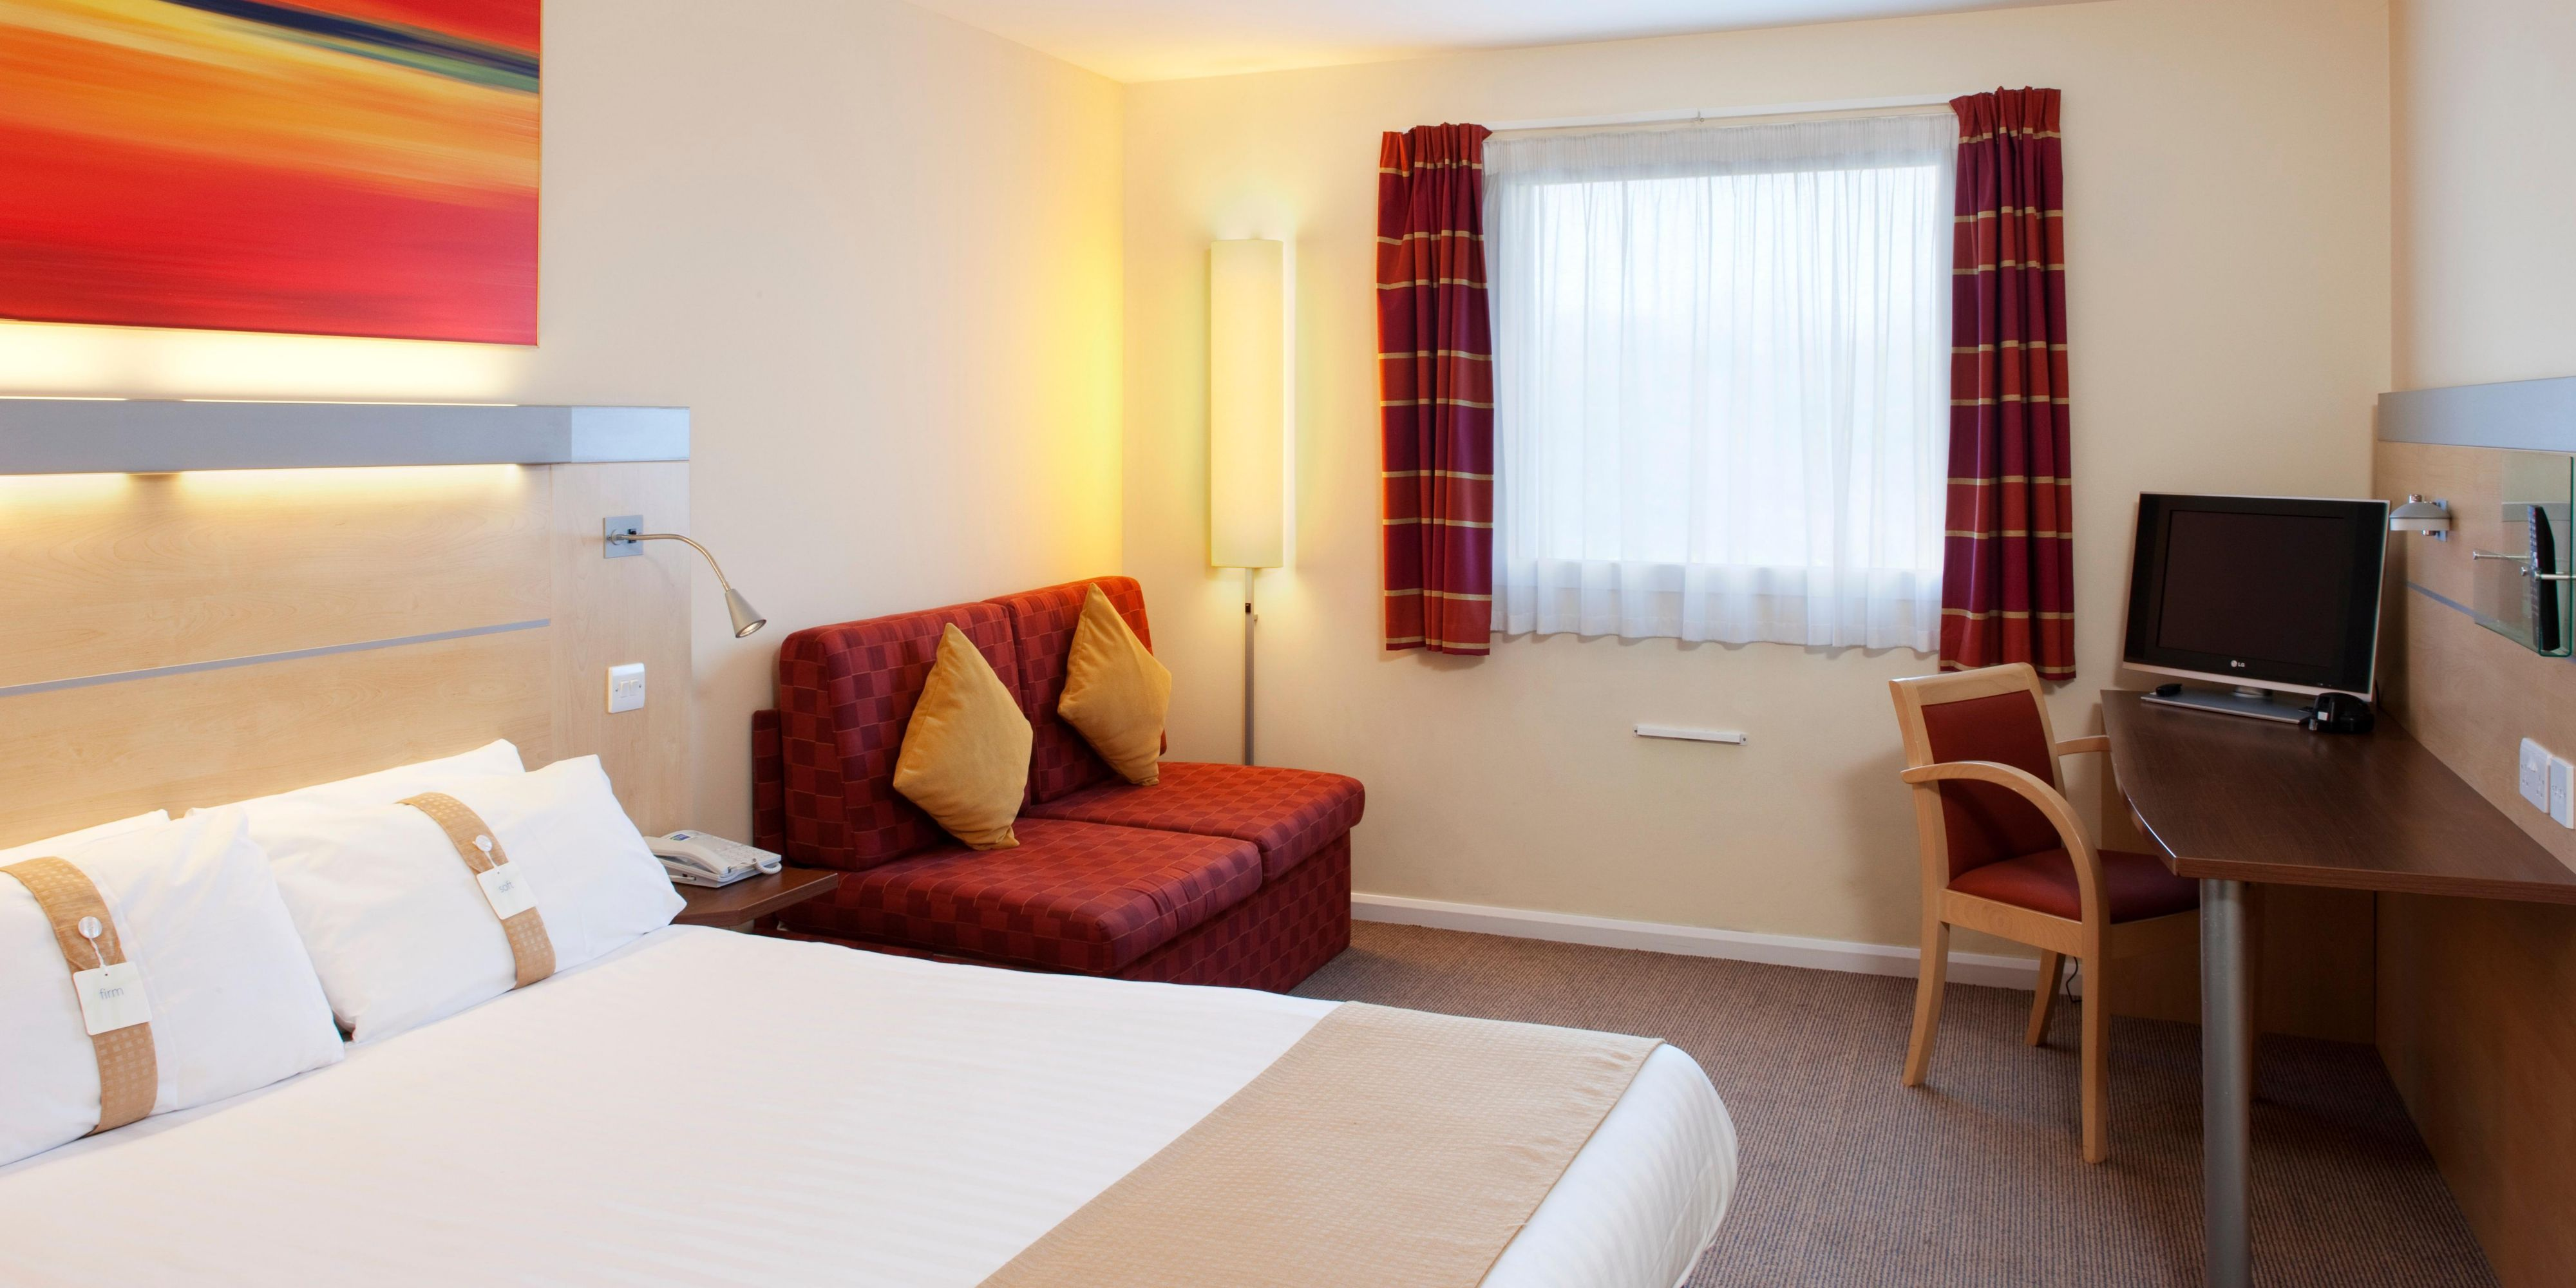 Holiday Inn Express Cardiff 2533062337 2x1